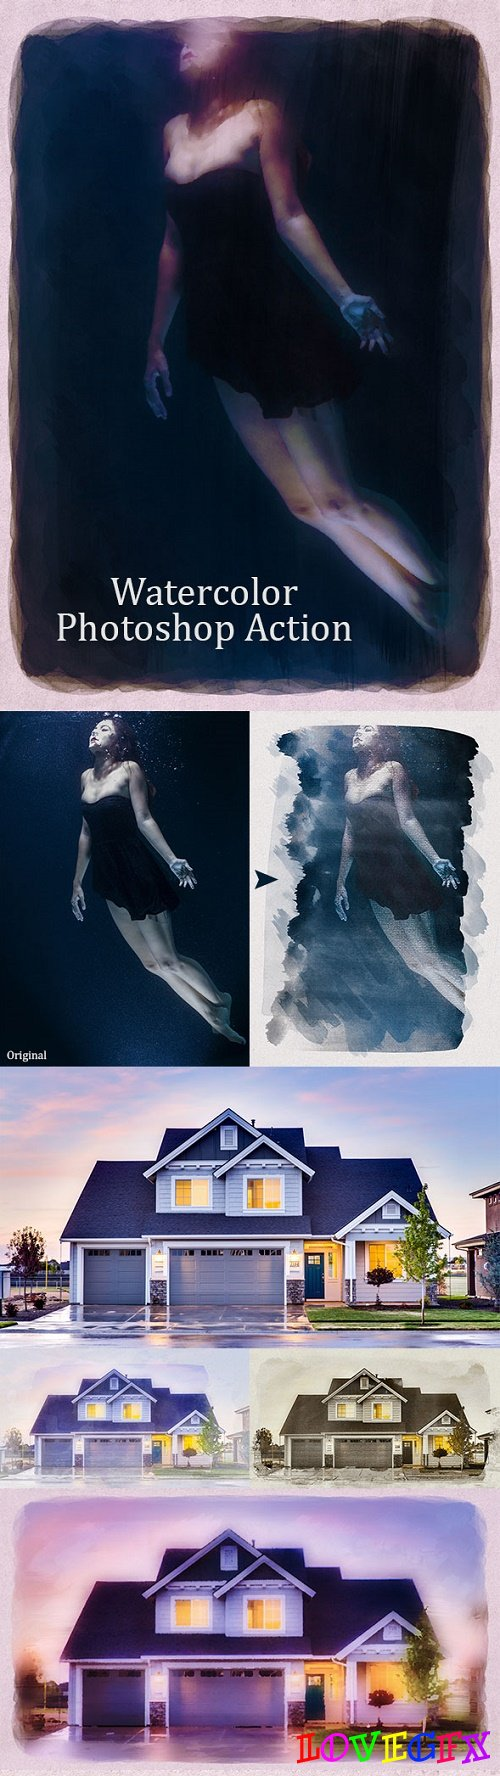 Real Watercolor Photoshop Action 2 22051485